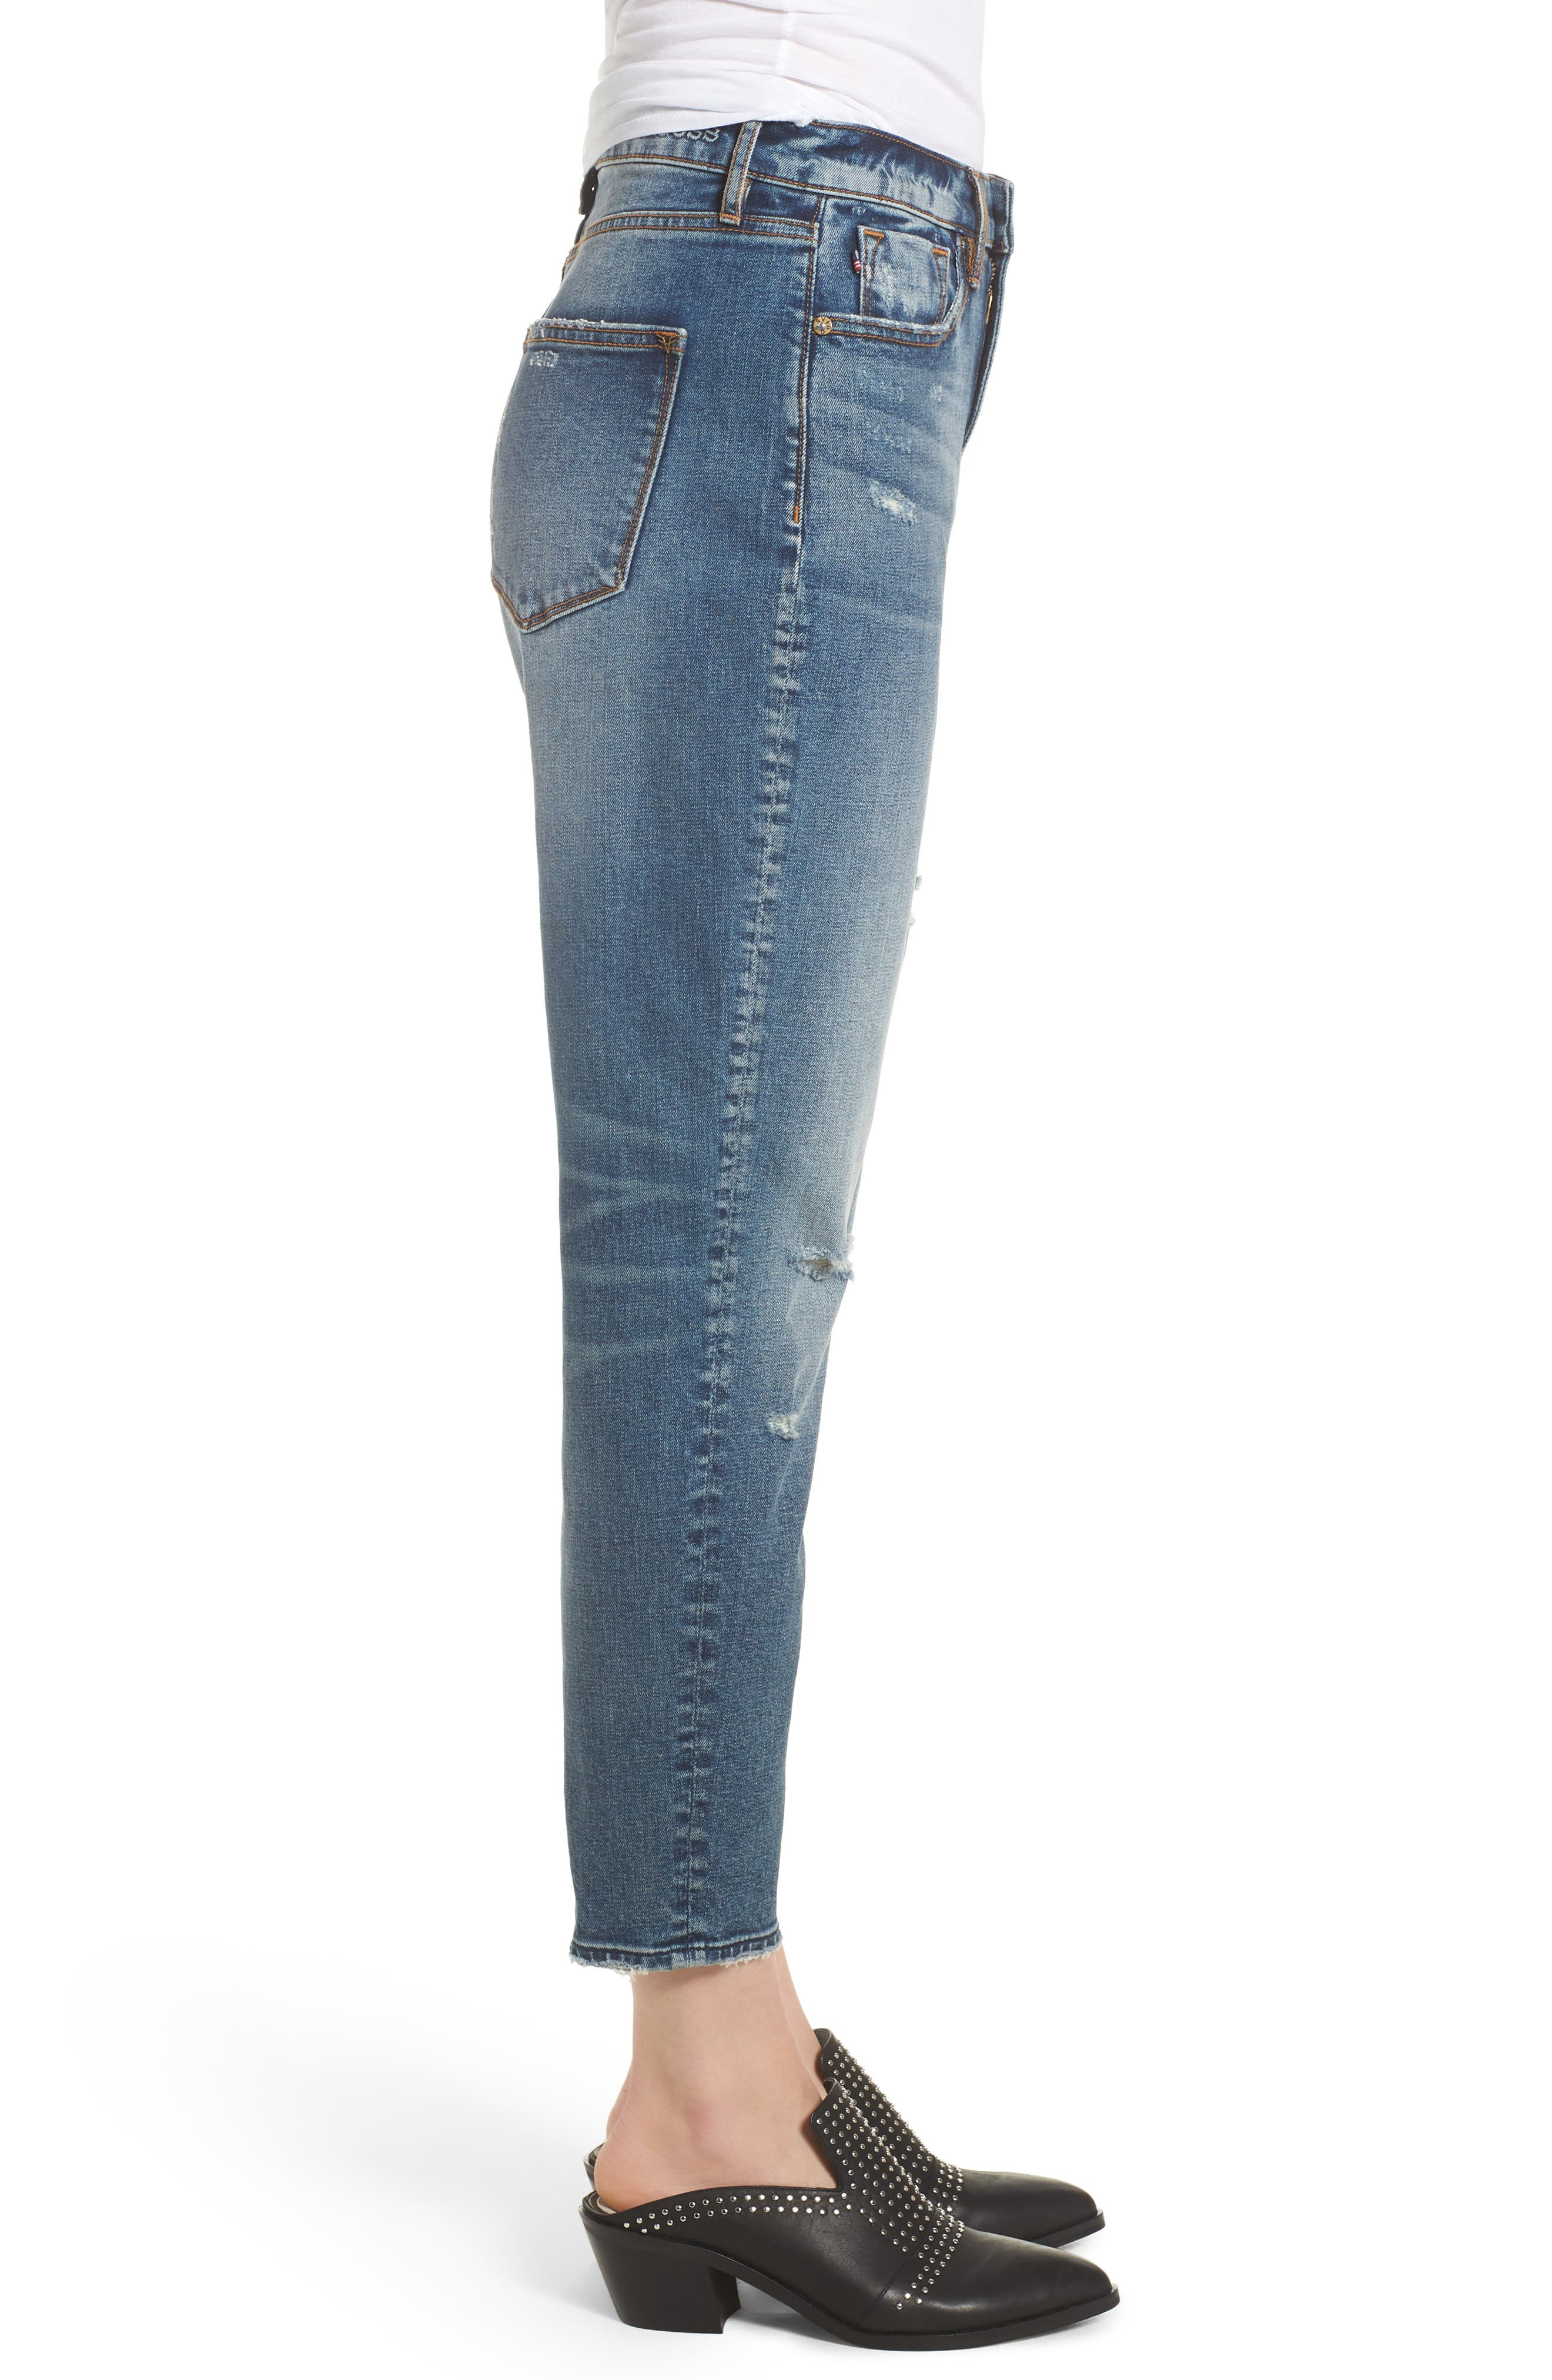 Friday Distressed Tapered Boyfriend Jeans,                             Alternate thumbnail 6, color,                             Medium Wash